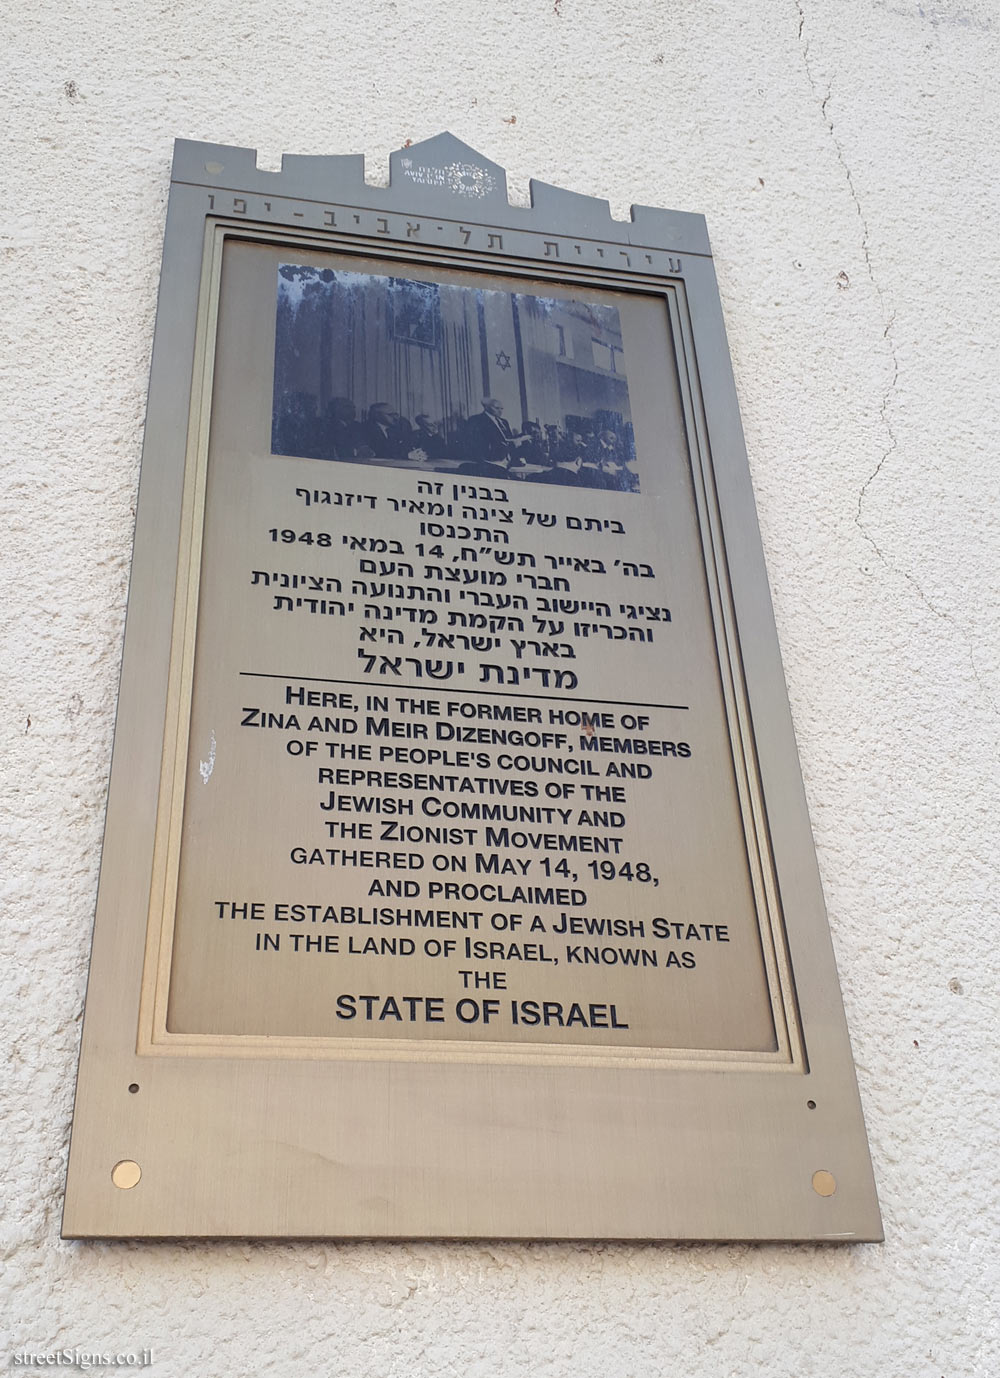 Tel Aviv - Independence Hall - Place of Declaration of the State of Israel